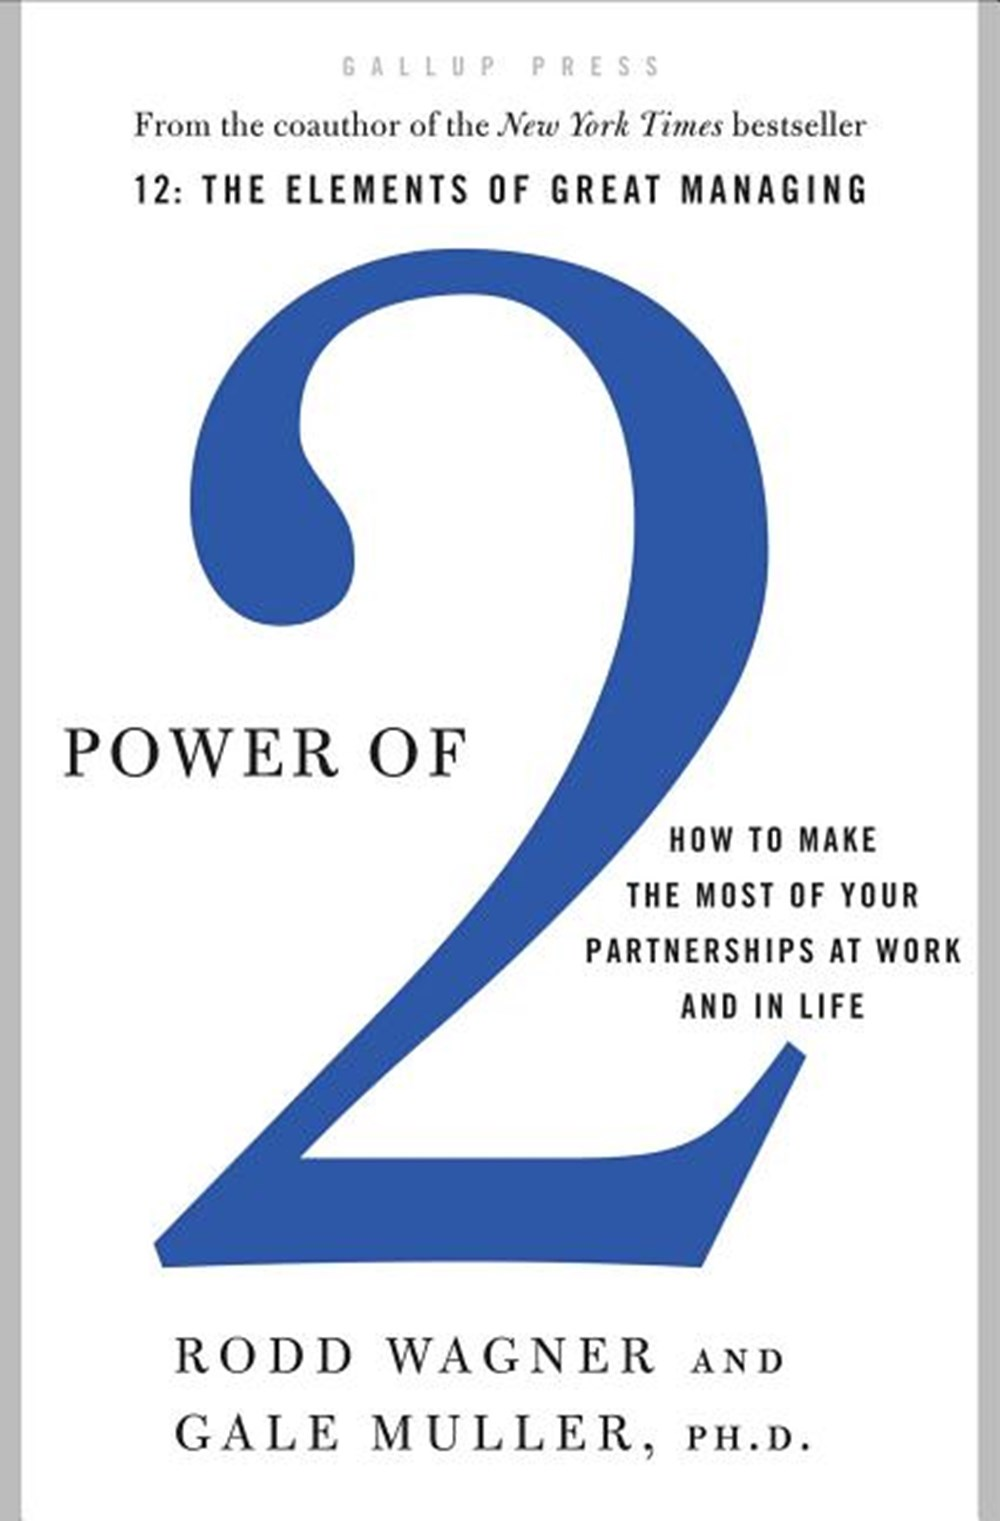 Power of 2 How to Make the Most of Your Partnerships at Work and in Life